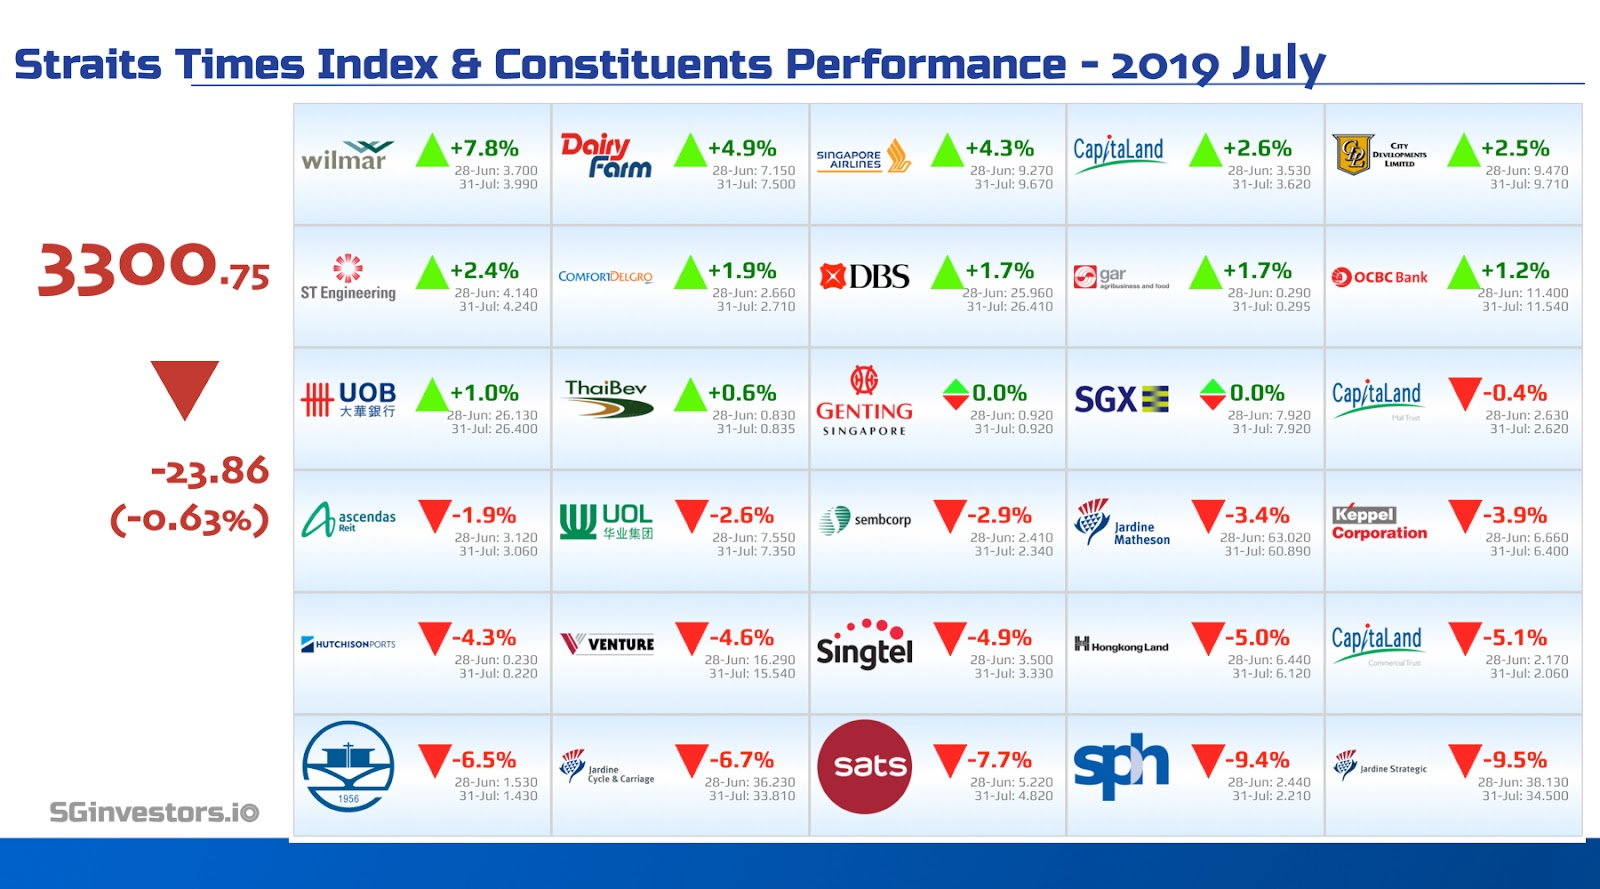 Performance of Straits Times Index (STI) Constituents in July 2019